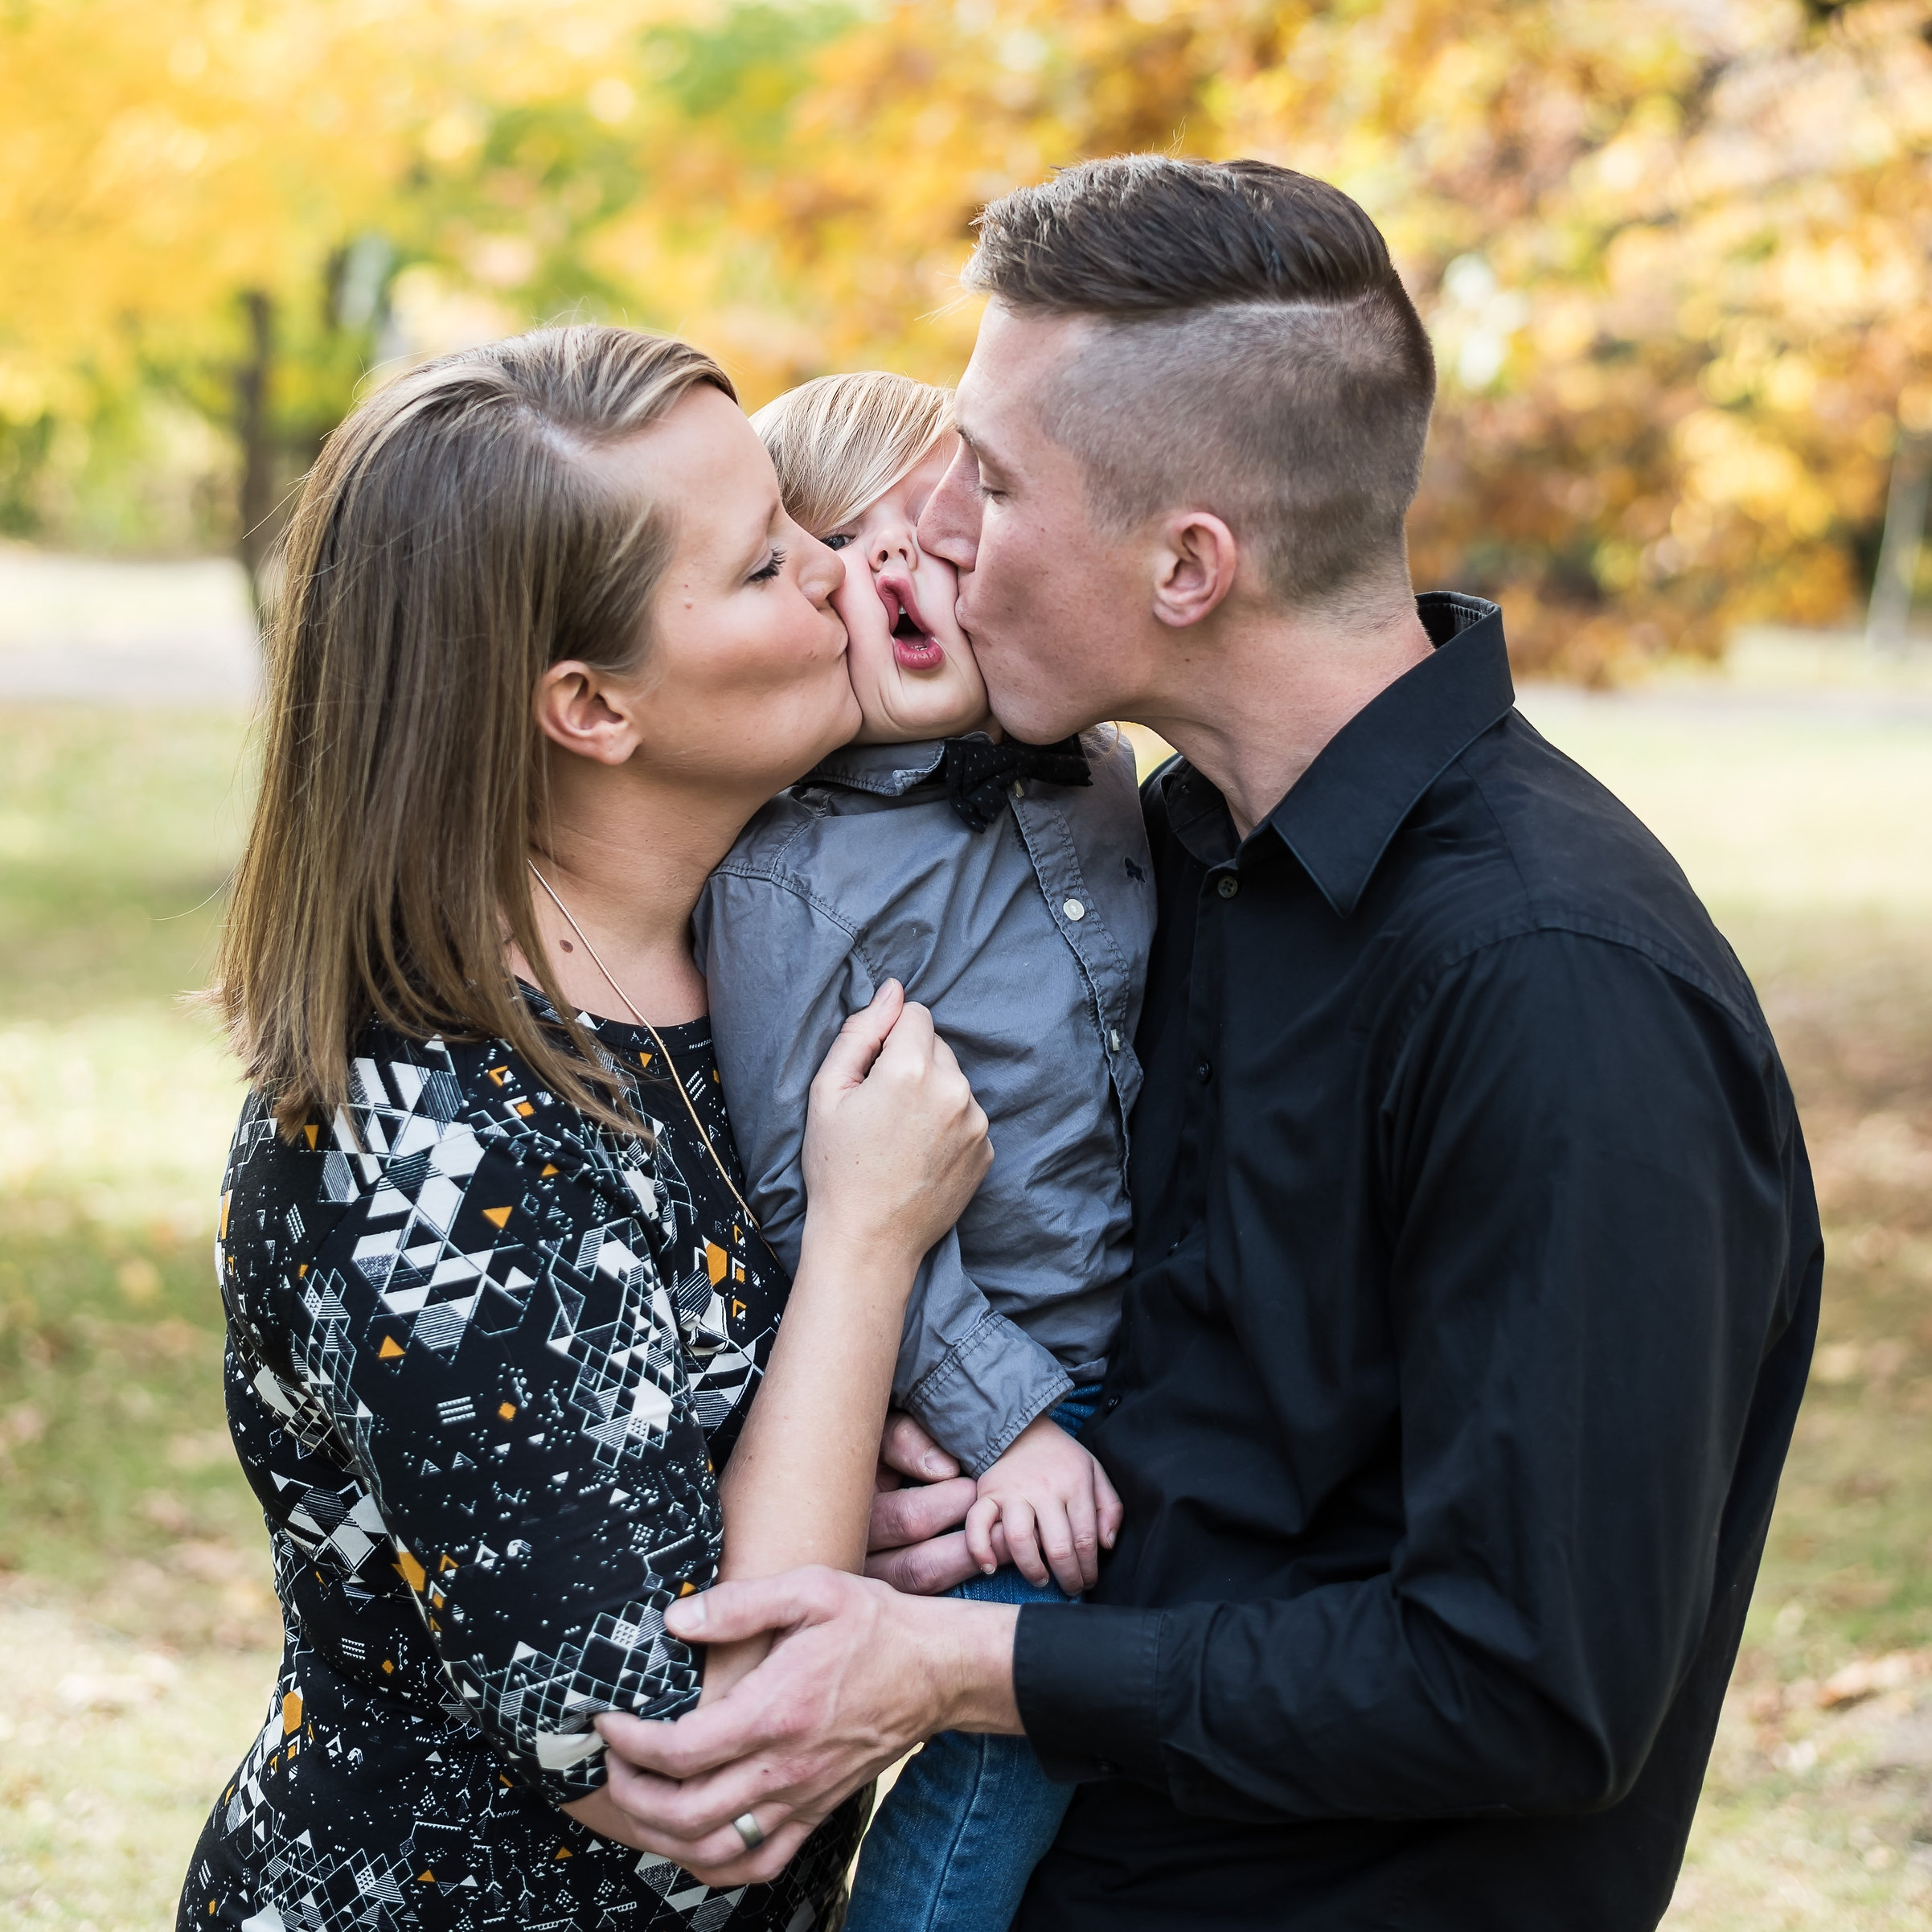 - For families who want a simple yet personalized portrait experience. Great for classic family photos and a little bit of lifestyle coverage. Usually yields 30-50 images for proofing.